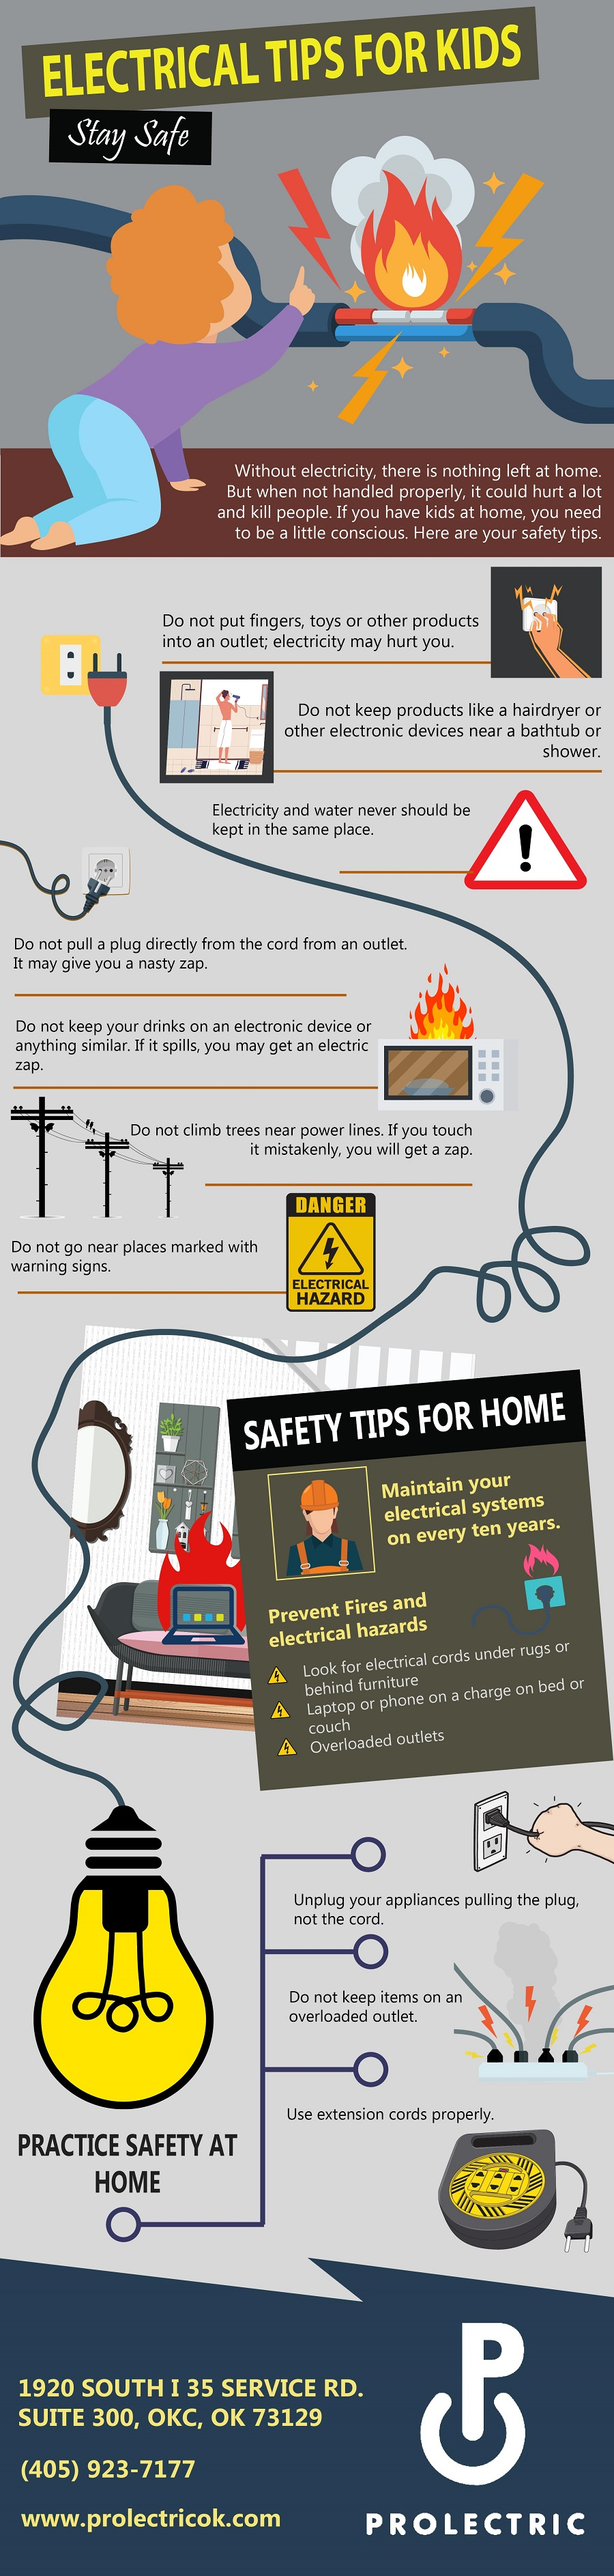 Electrical tips For Kids To Stay Safe